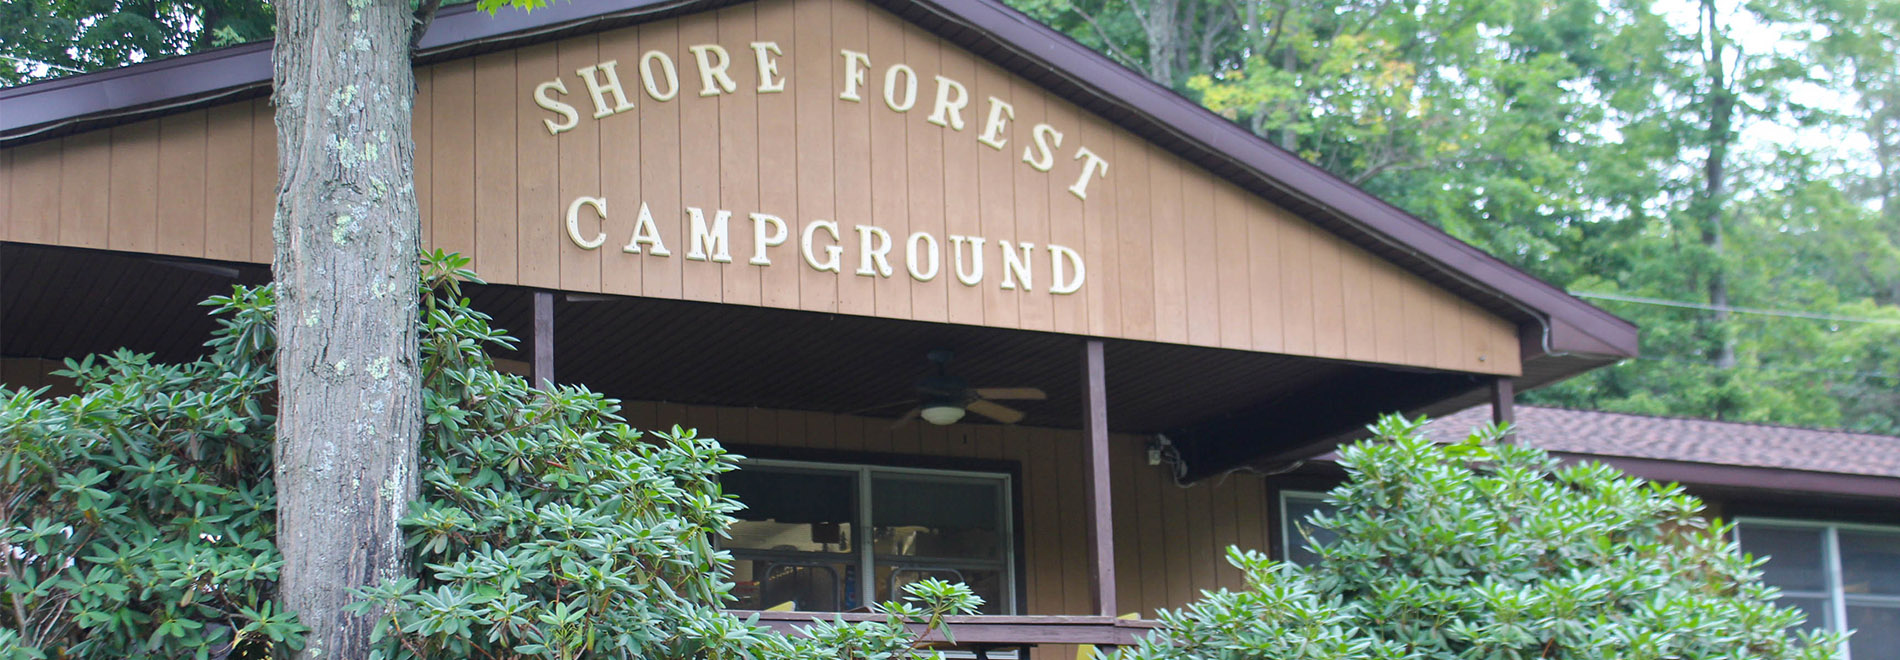 Shore Forest Campground